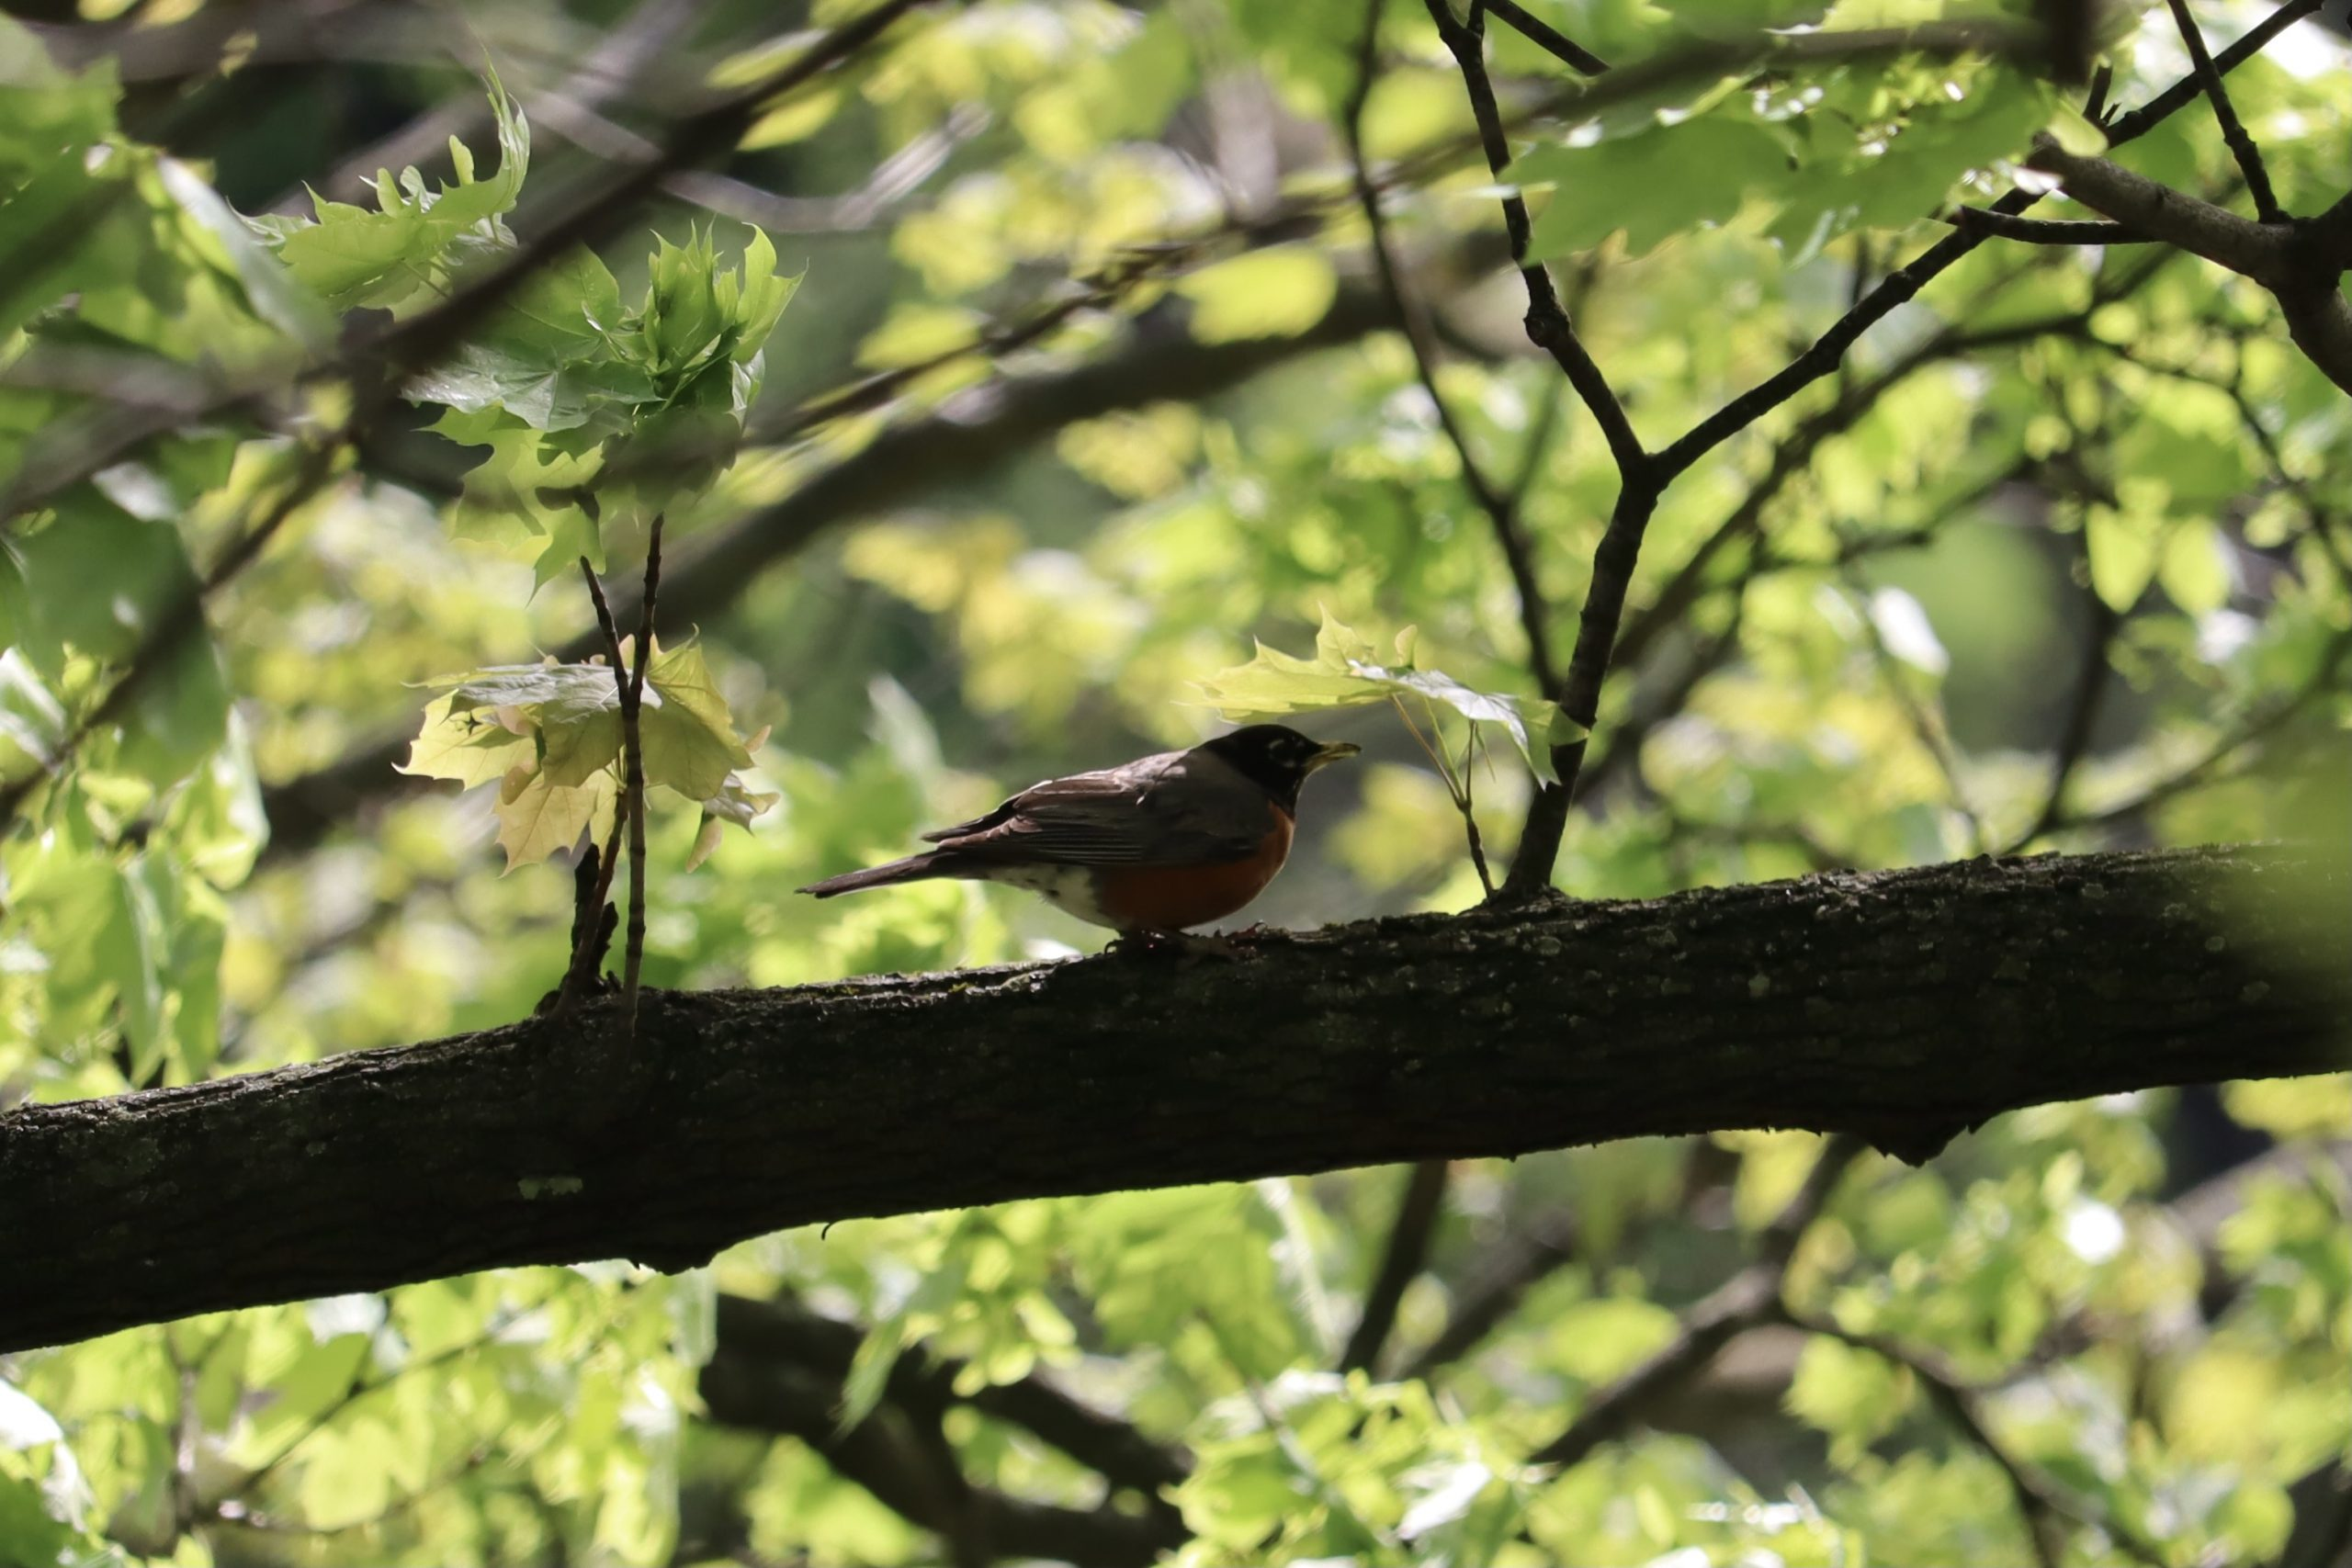 It took a bit to get down how to take photos of birds in trees. Good thing film is cheap. Here is an American Robin on a branch in a tree.